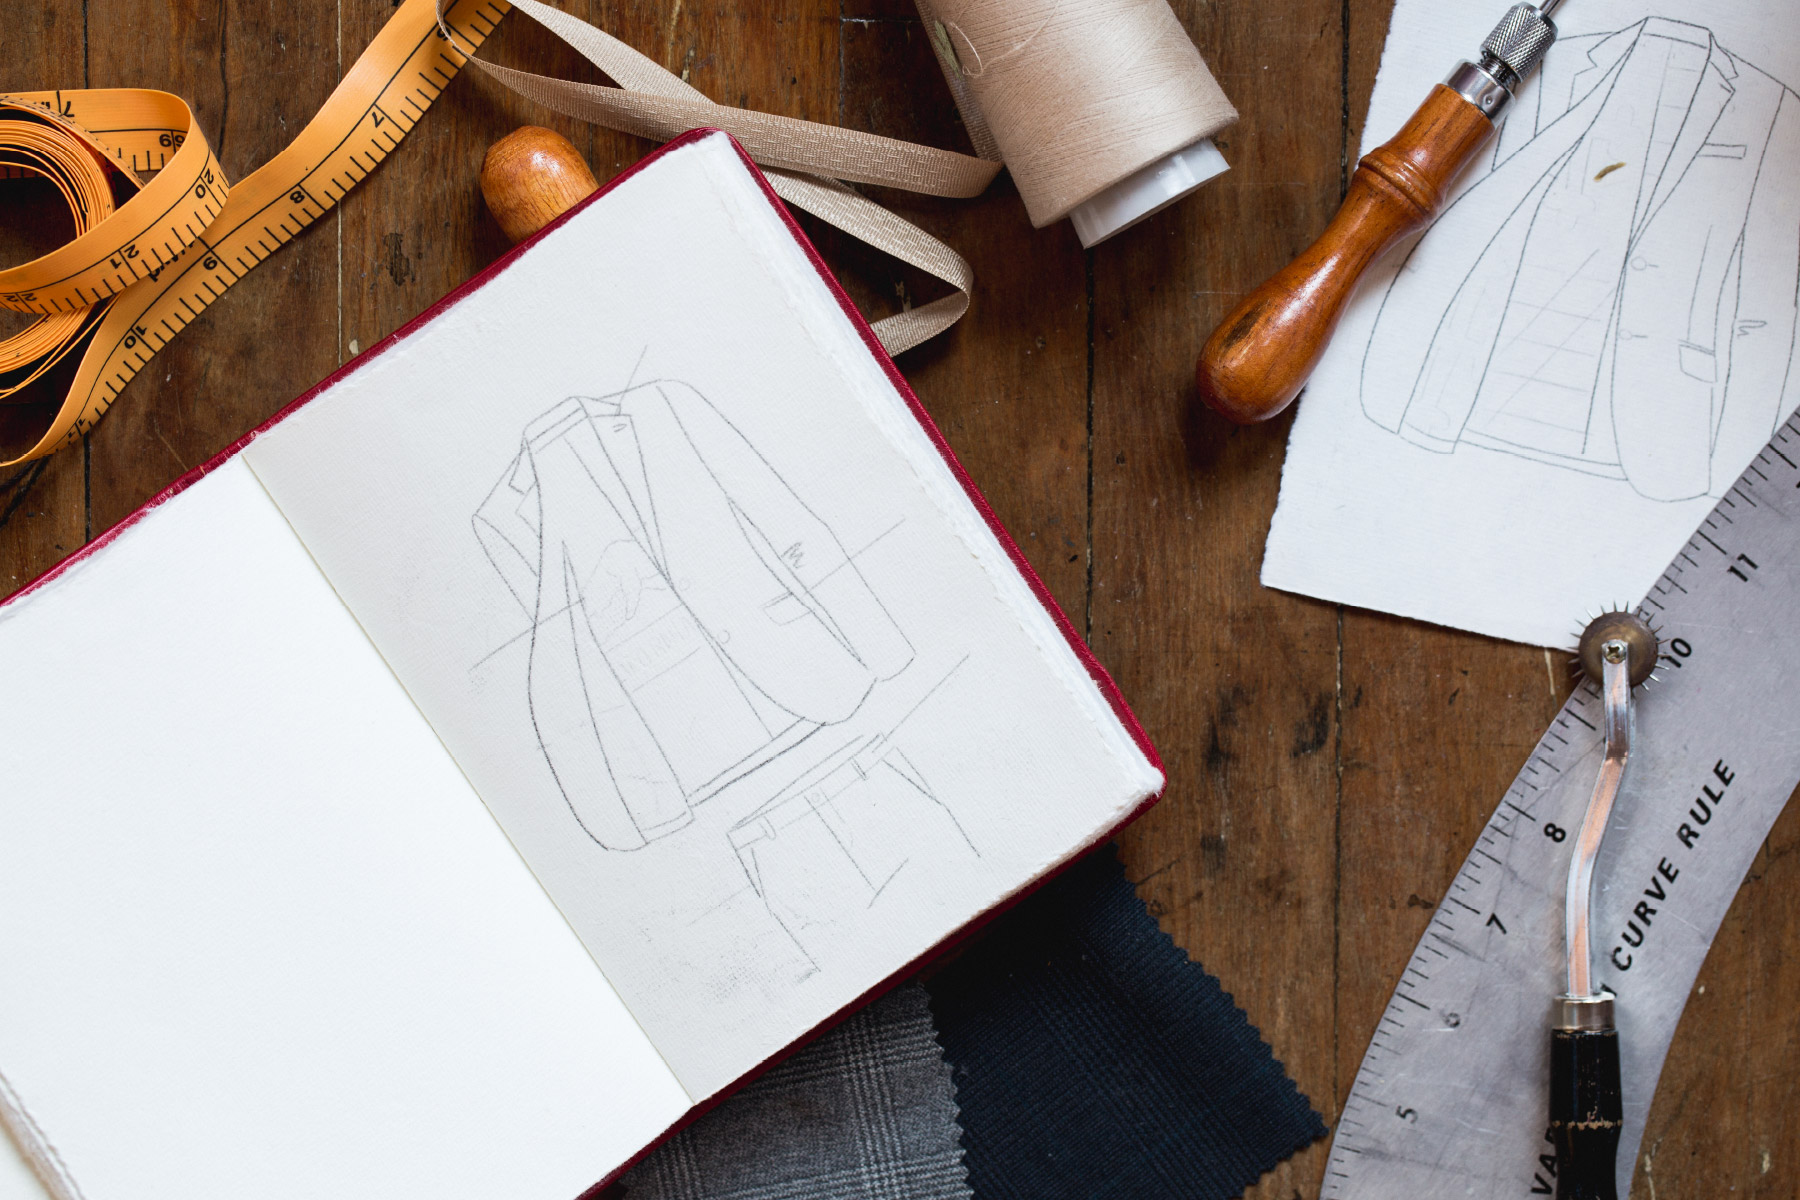 Sketches on men's blazers